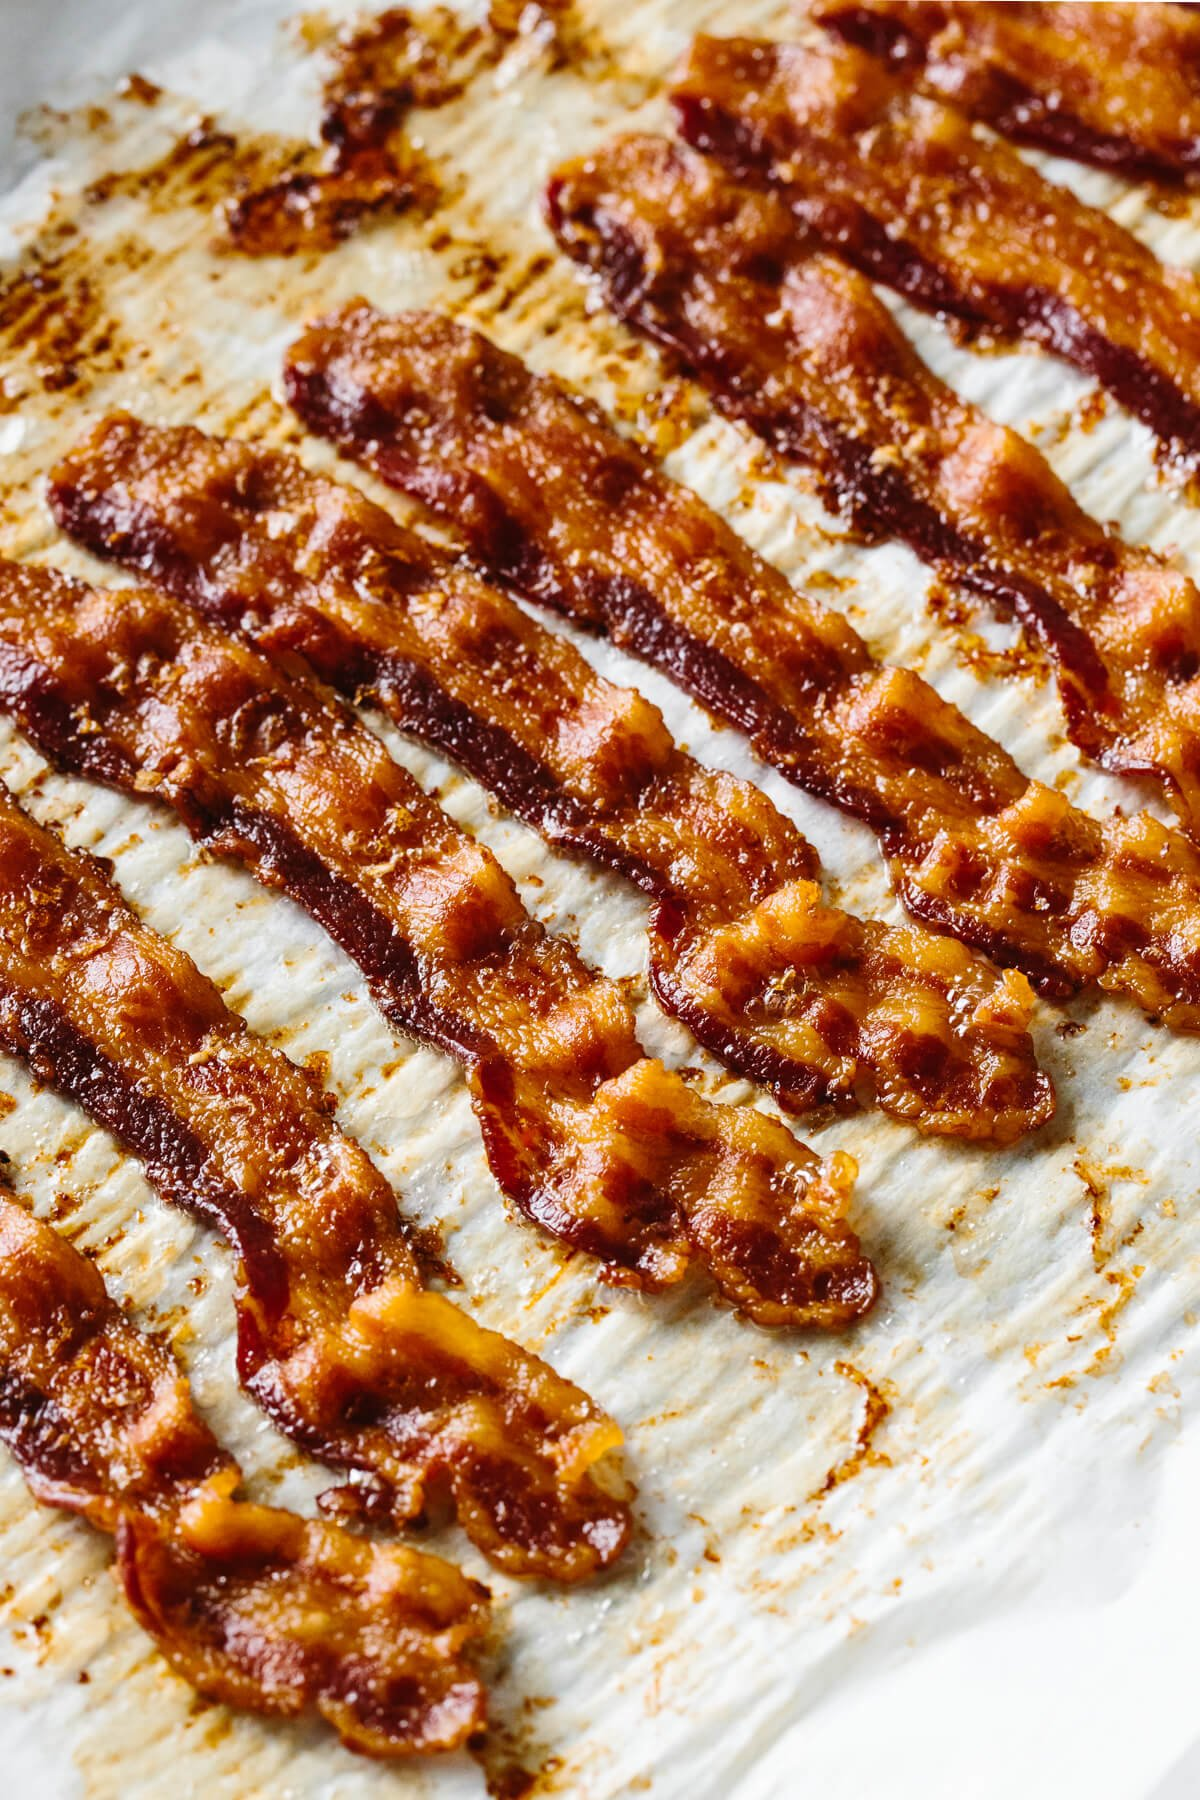 Crispy oven baked bacon on a sheet tray.